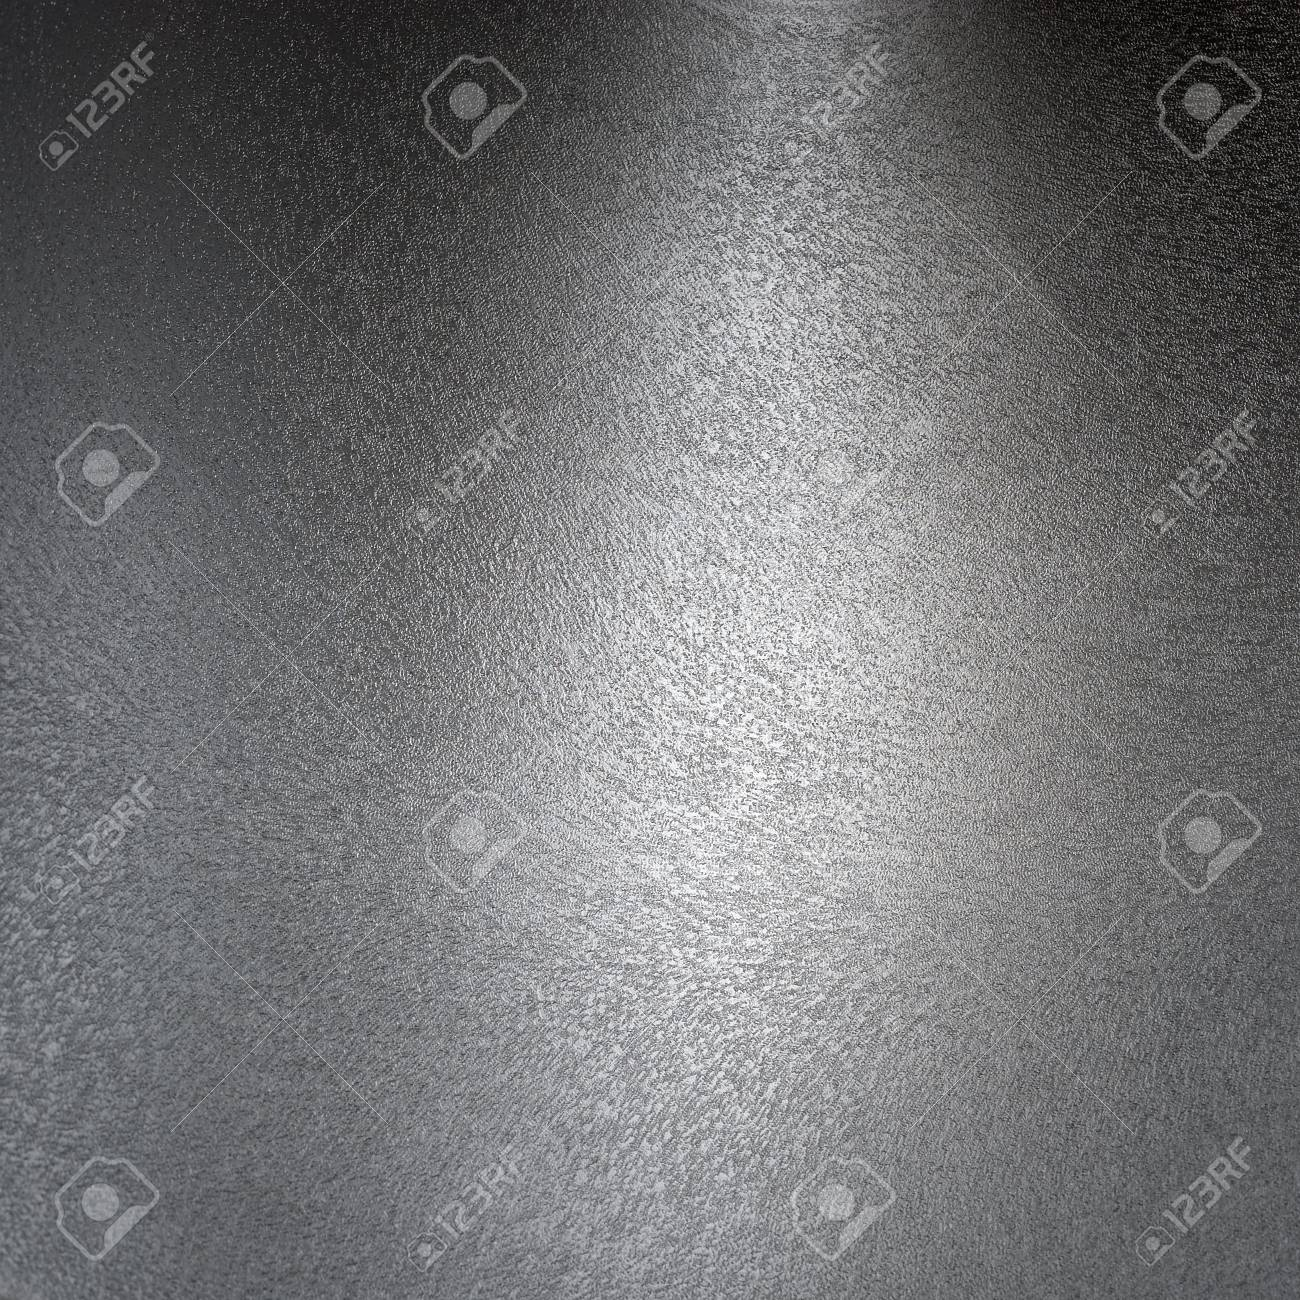 Structured metal surface as an abstract background motive Stock Photo - 6761531